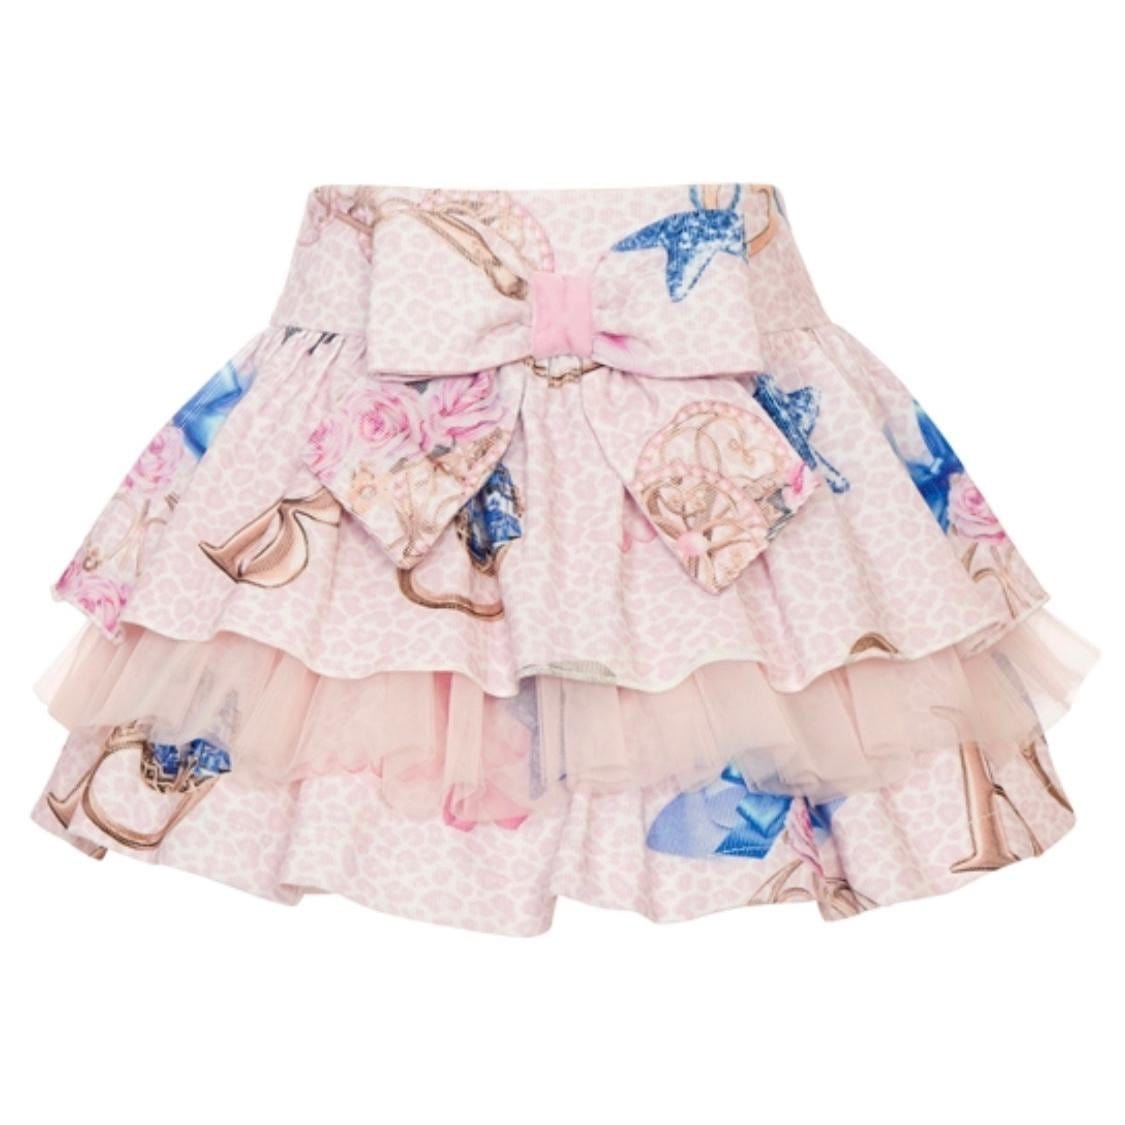 BALLOON CHIC ONCE UPON A TIME SKIRT SET